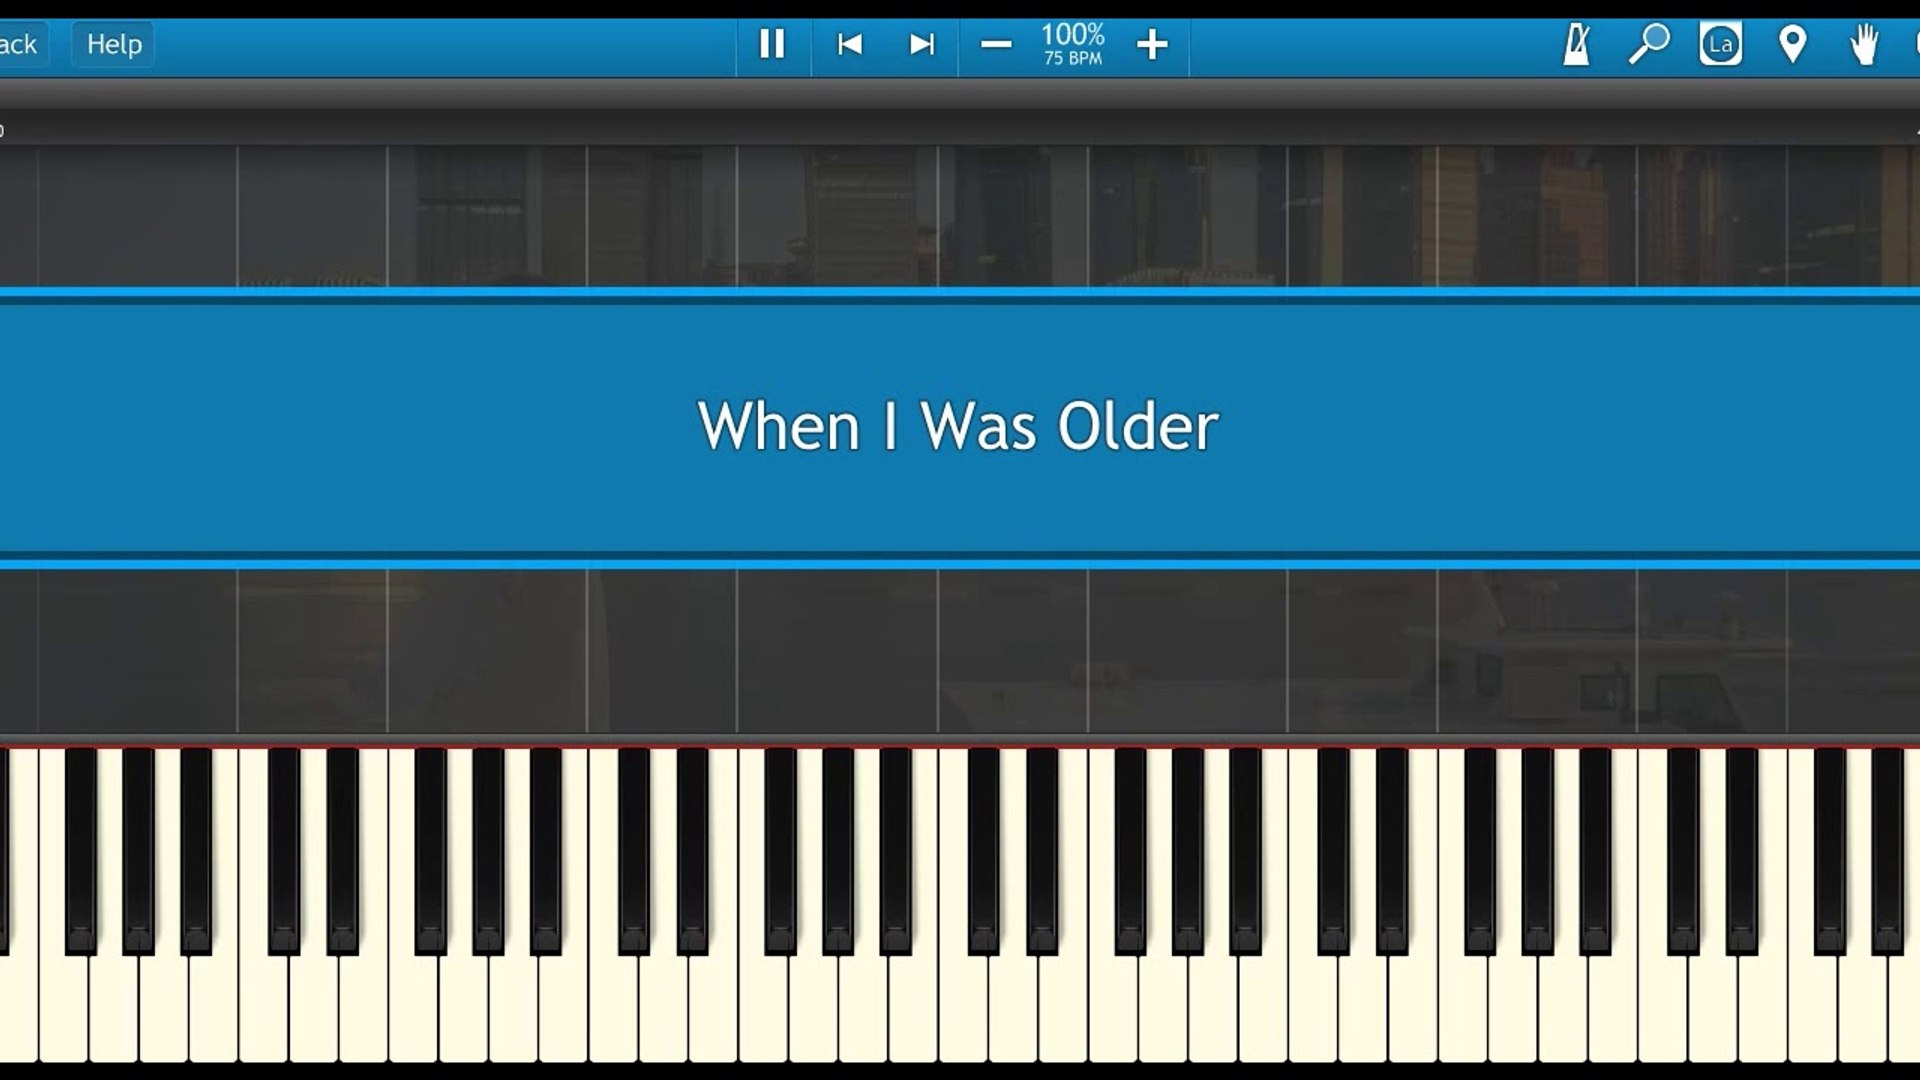 When I Was Older-Billie Eilish (Piano Tutorial Synthesia)